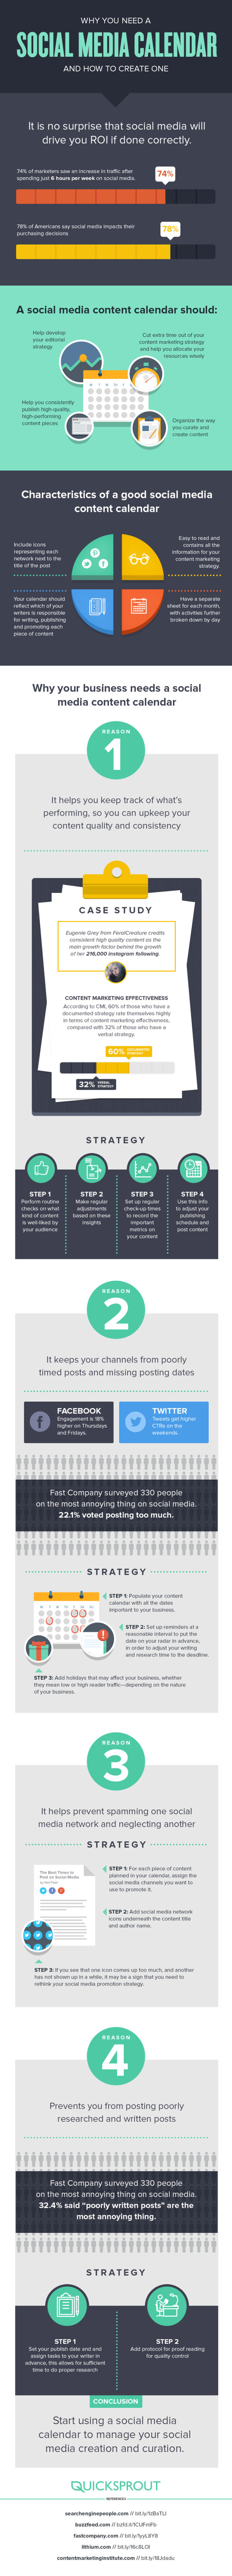 How to Create a Social Media Content Calendar Your Followers Will Love #Infographic